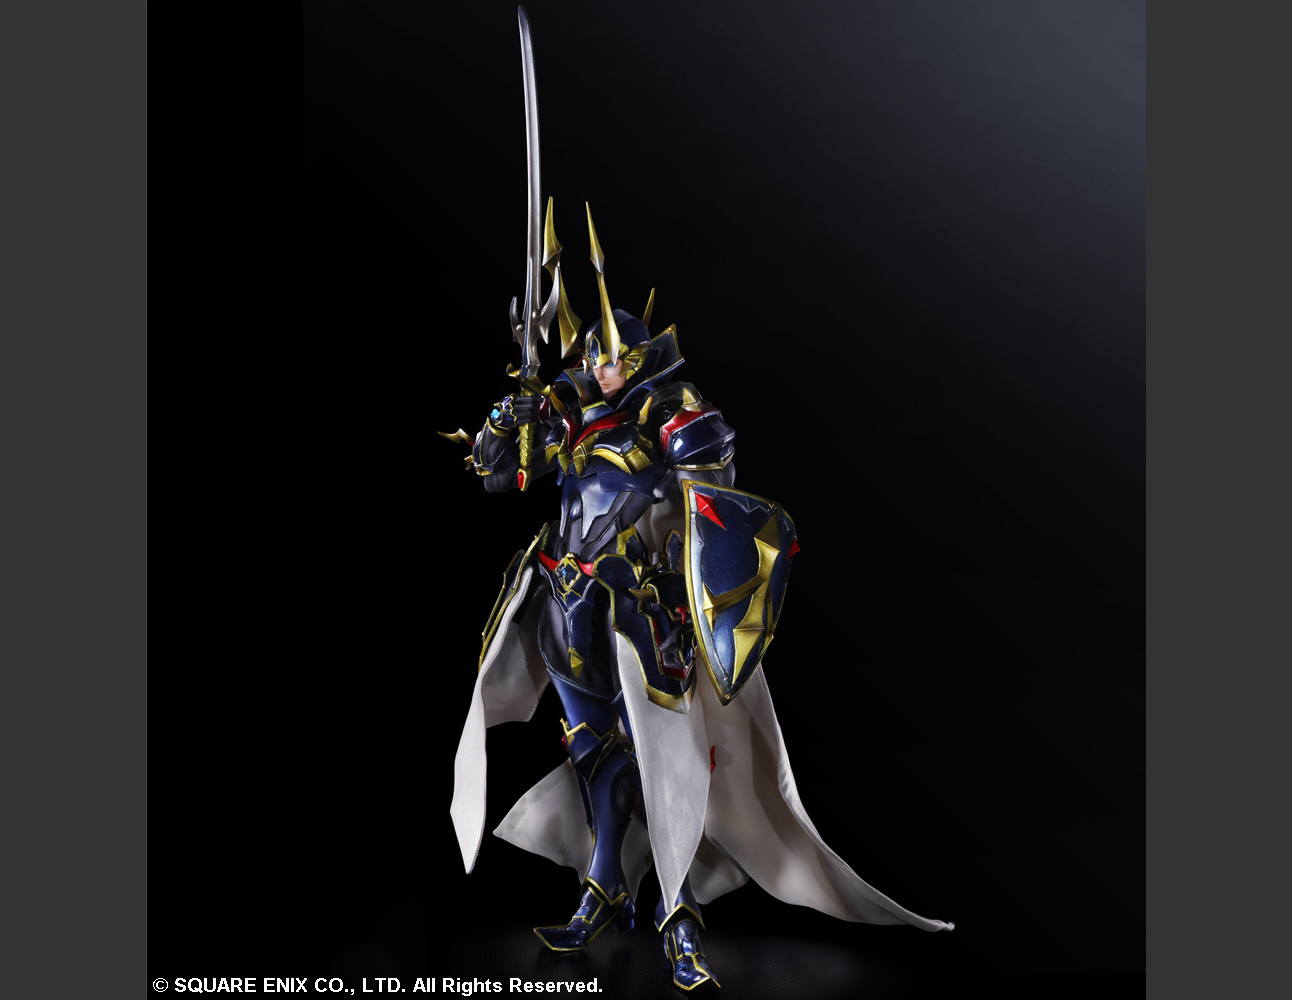 FINAL FANTASY VARIANT PLAY ARTS -KAI- HERO OF LIGHT